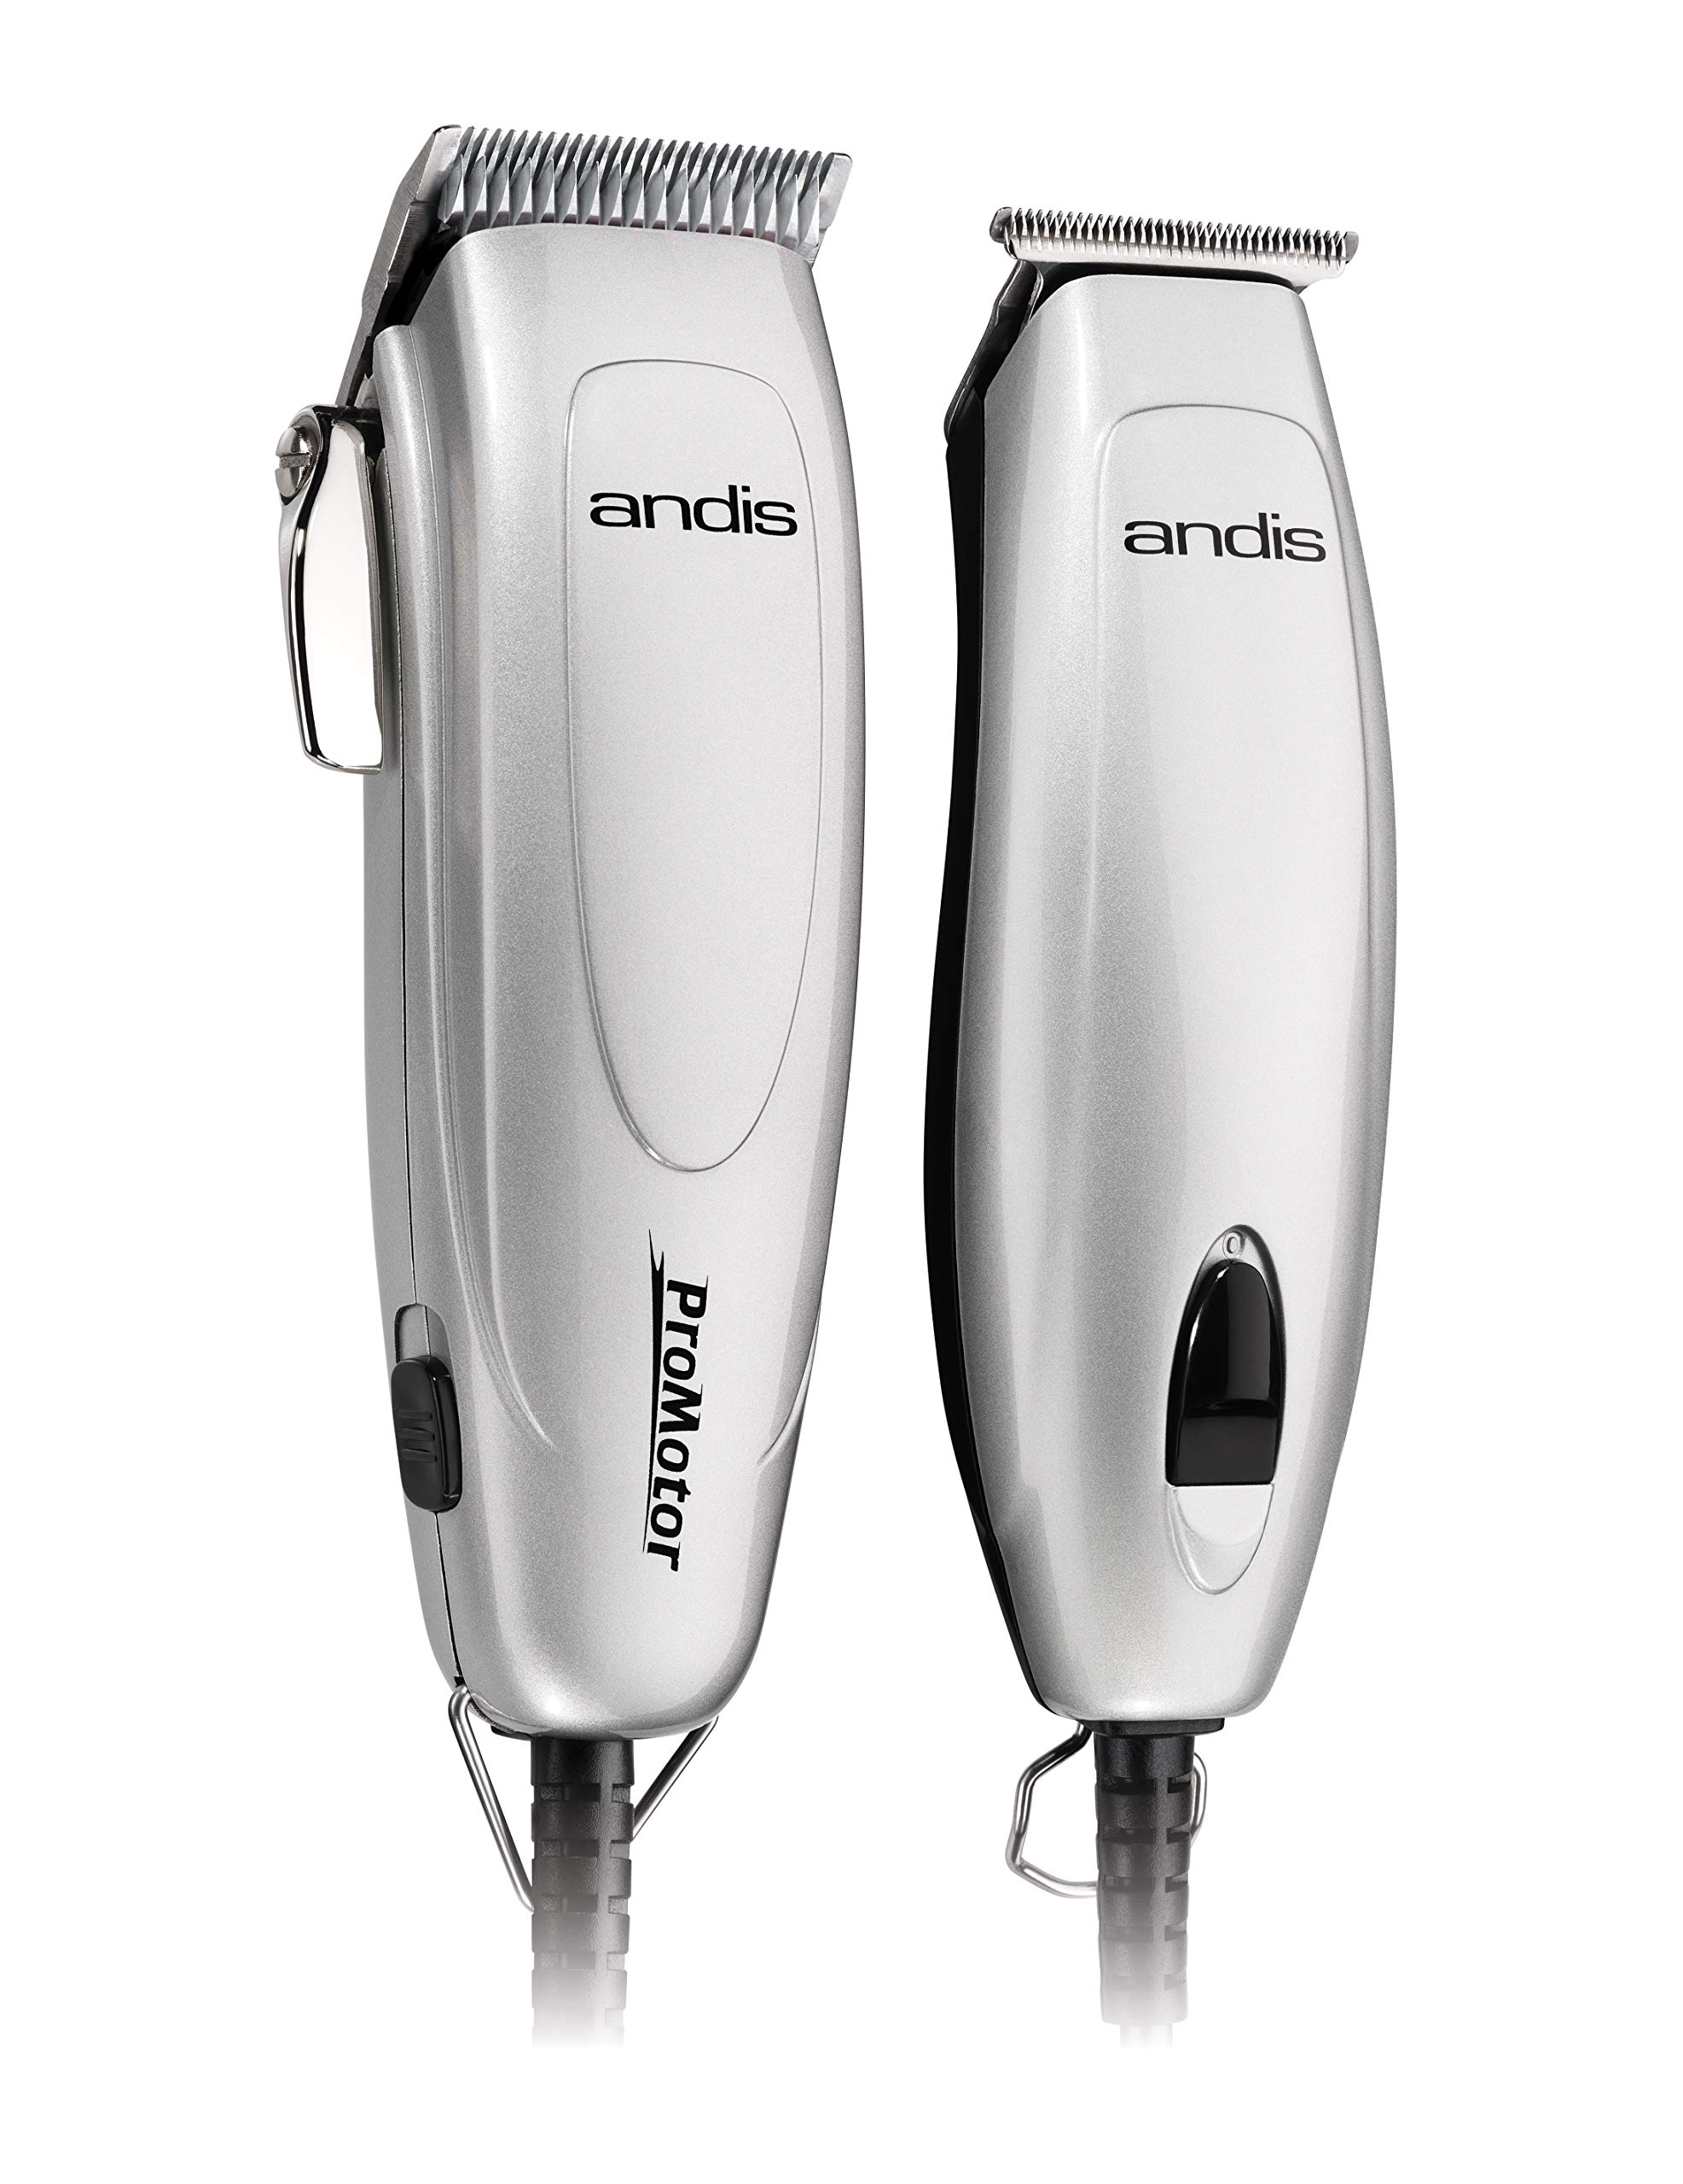 Andis Promotor+ Combo 27-Piece Haircutting Kit by Andis